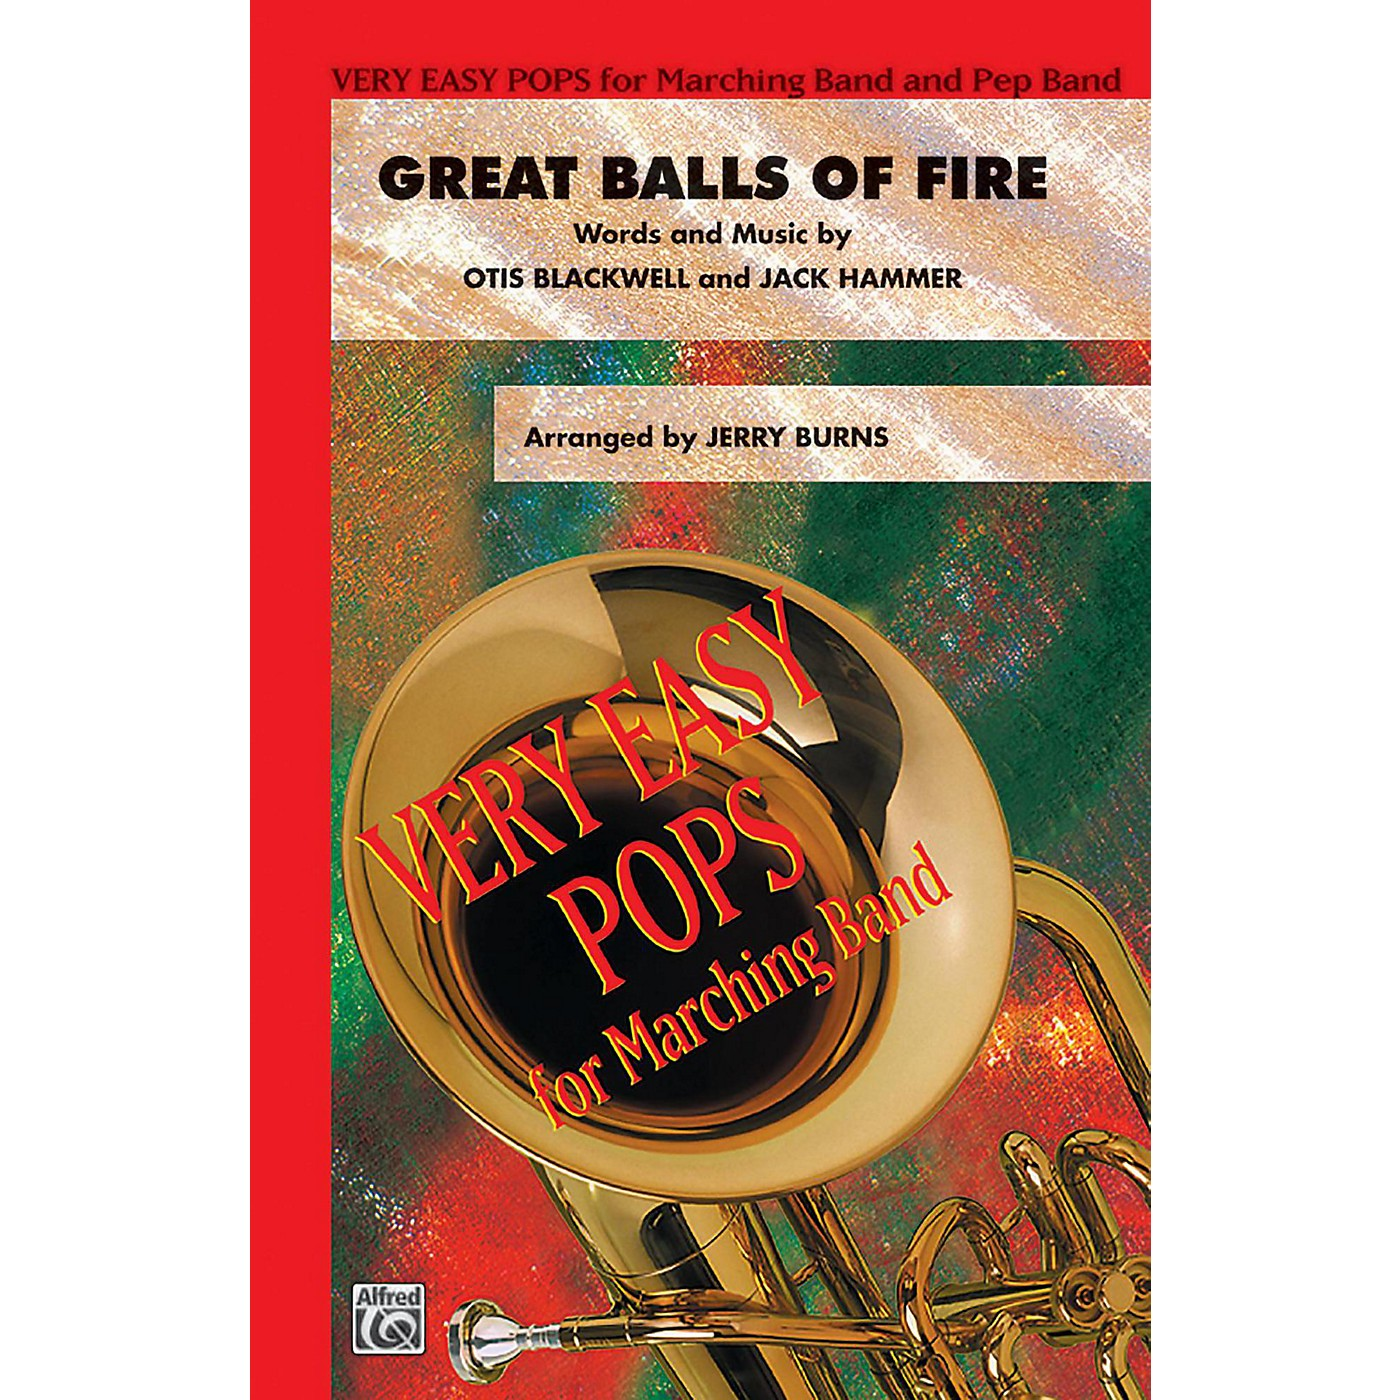 Alfred Great Balls of Fire Grade 1.5 (Very Easy) thumbnail